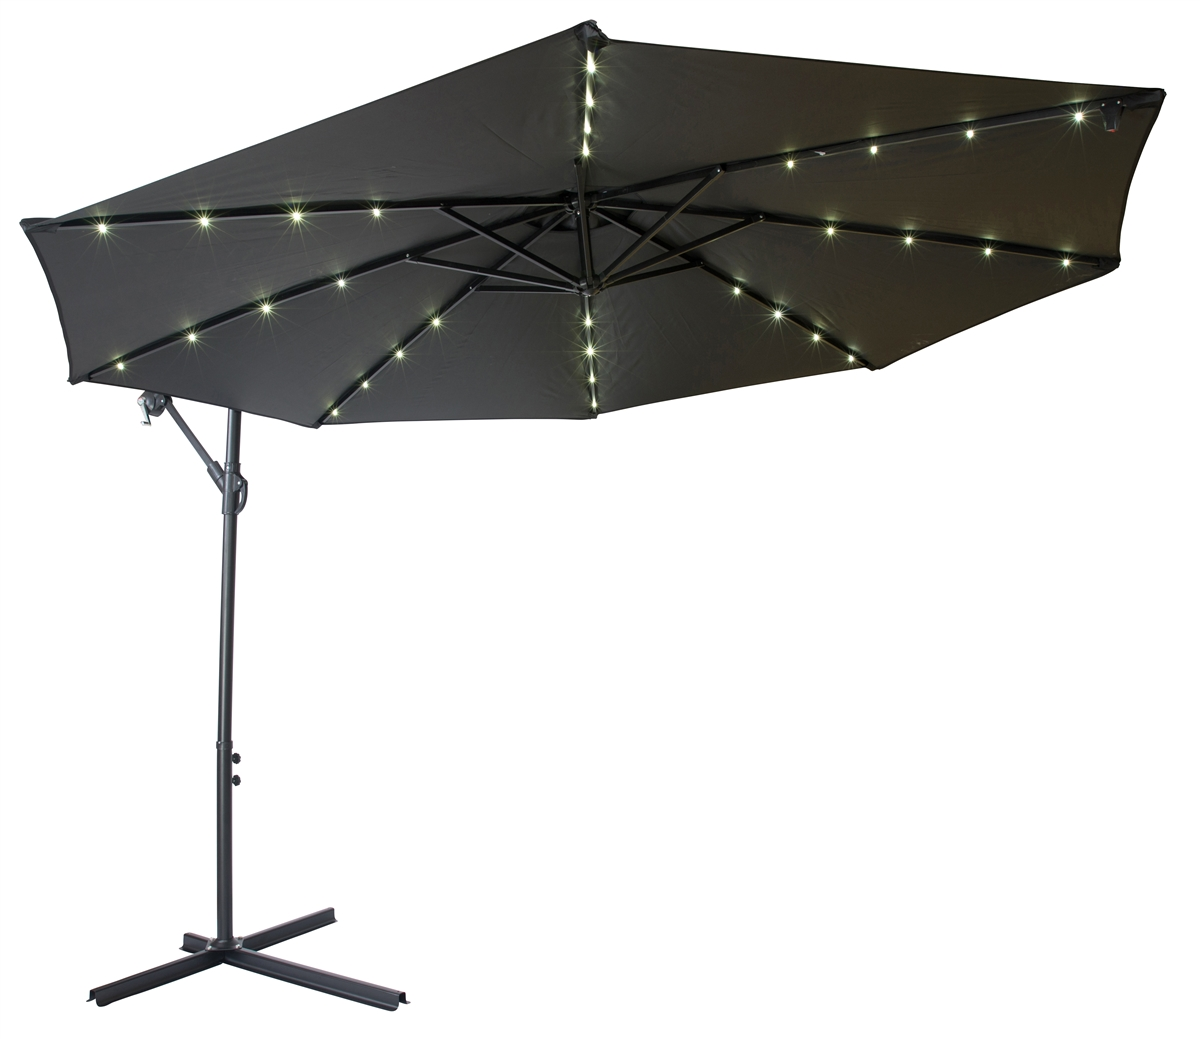 10u0027 Deluxe Polyester Offset Patio Umbrella With LED Lights By Trademark  Innovations (Black)